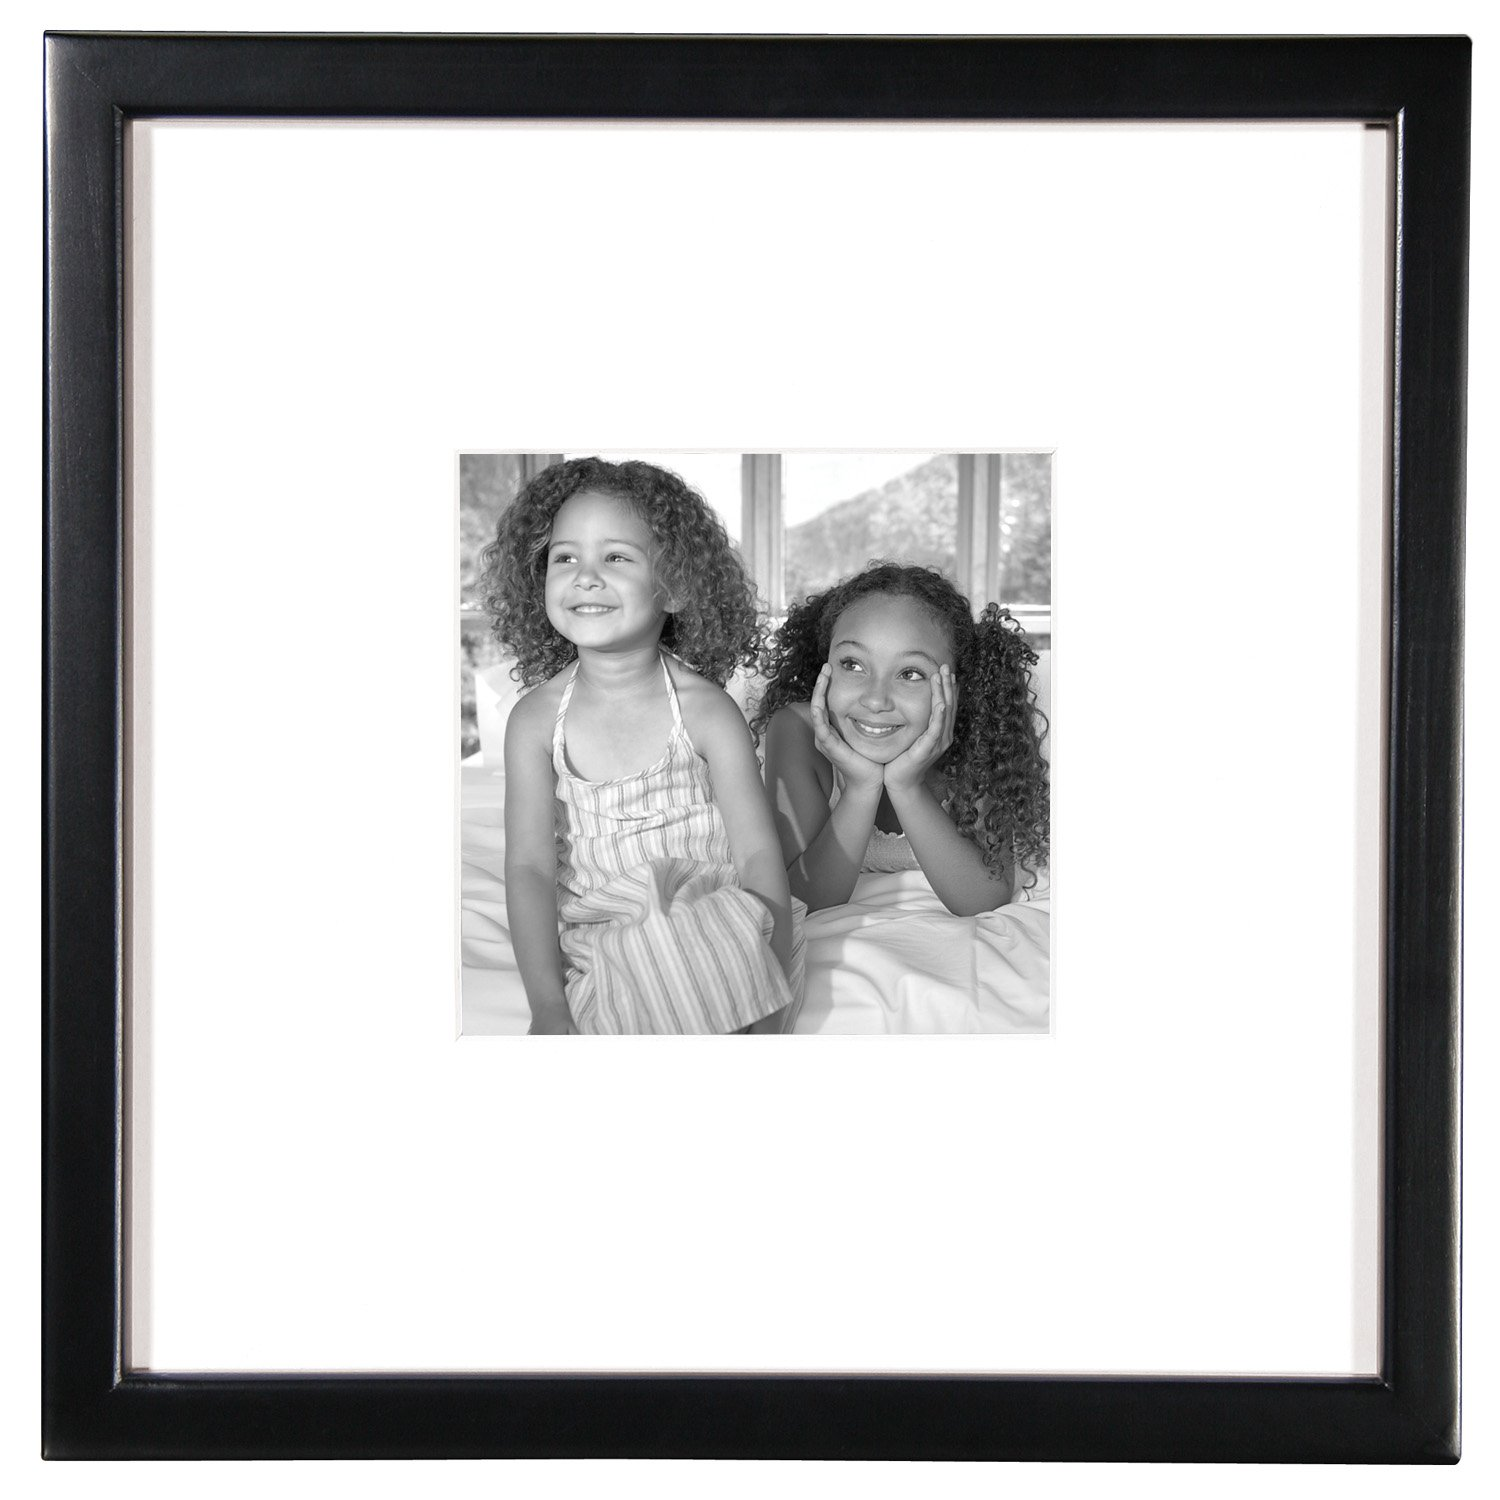 MCS 12x12 Inch East Village Collage Frame with 6x6 Inch Mat Opening, Black (65592) by MCS